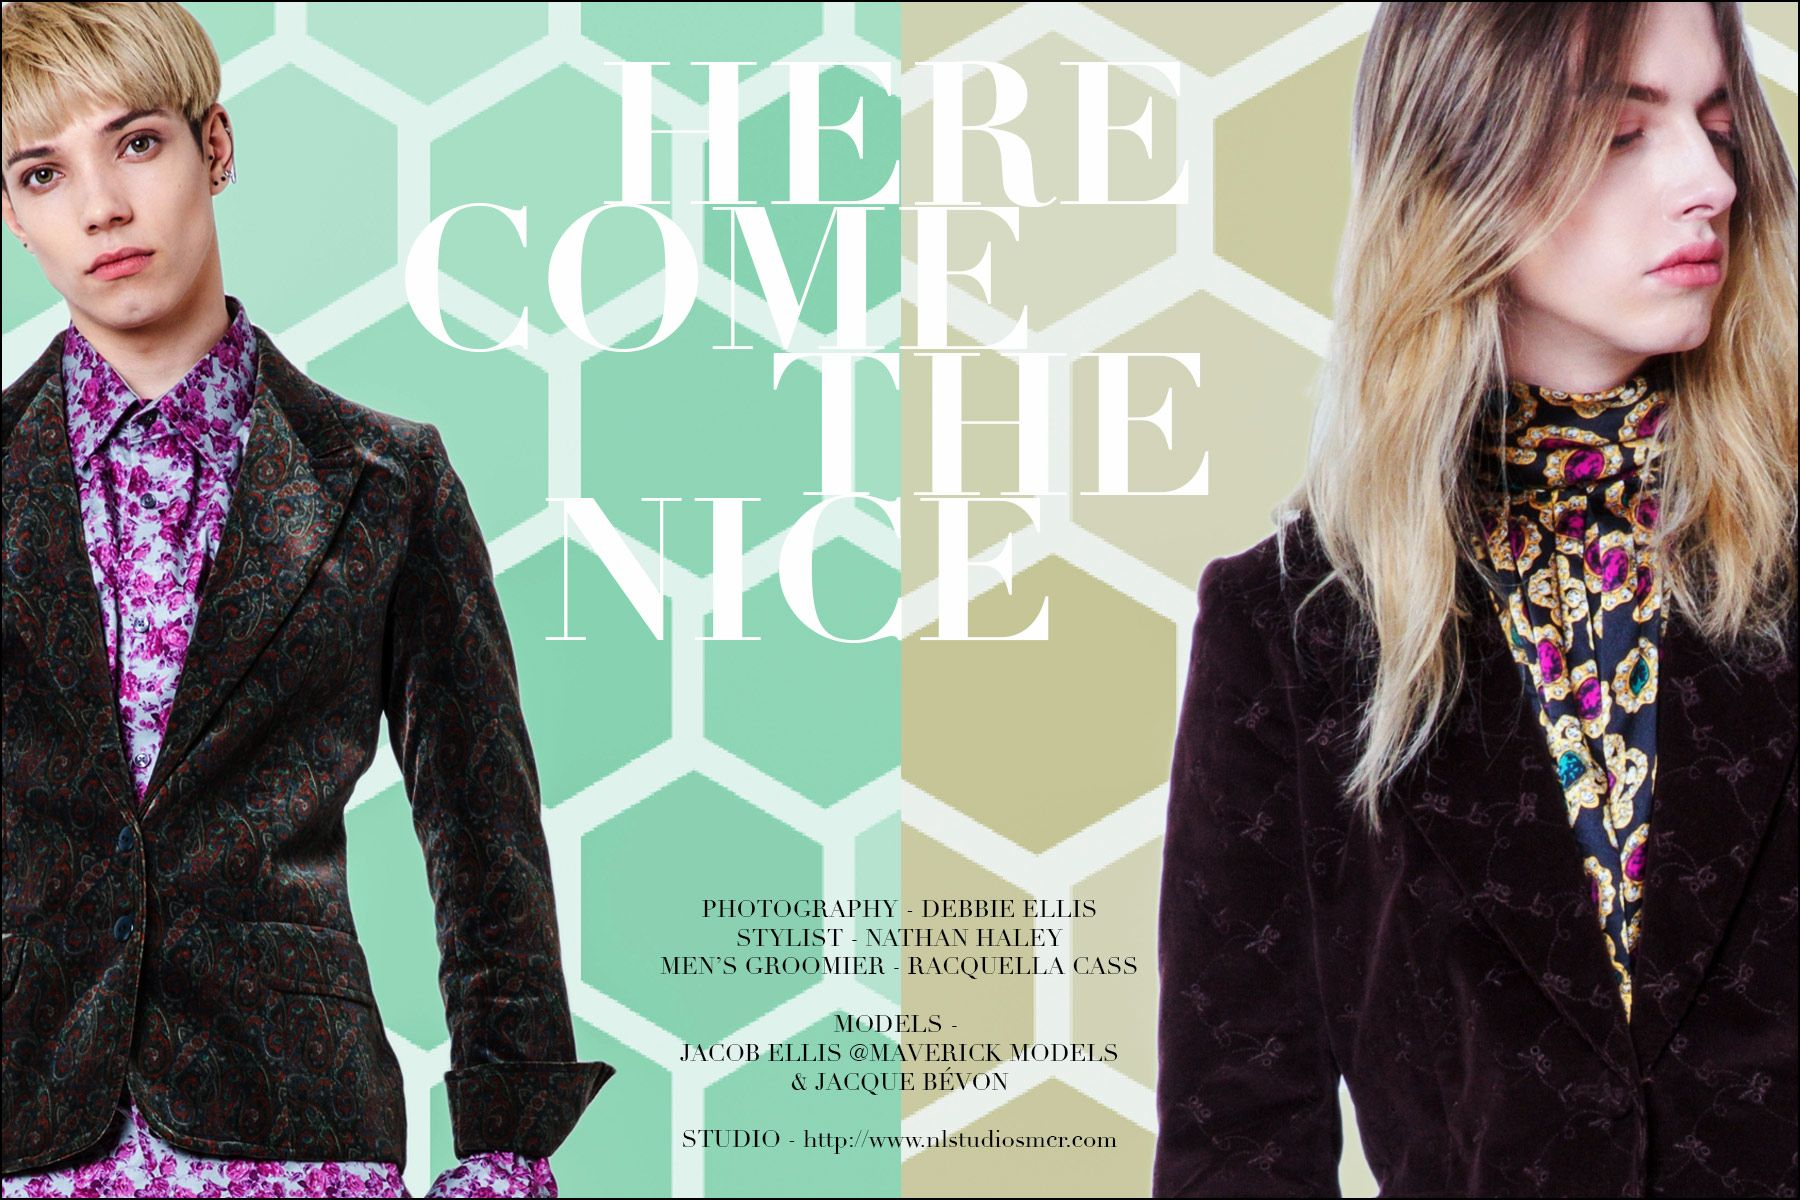 """Here Come the Nice"" menswear editorial, photographed by Debbie Ellis. Ponyboy magazine."